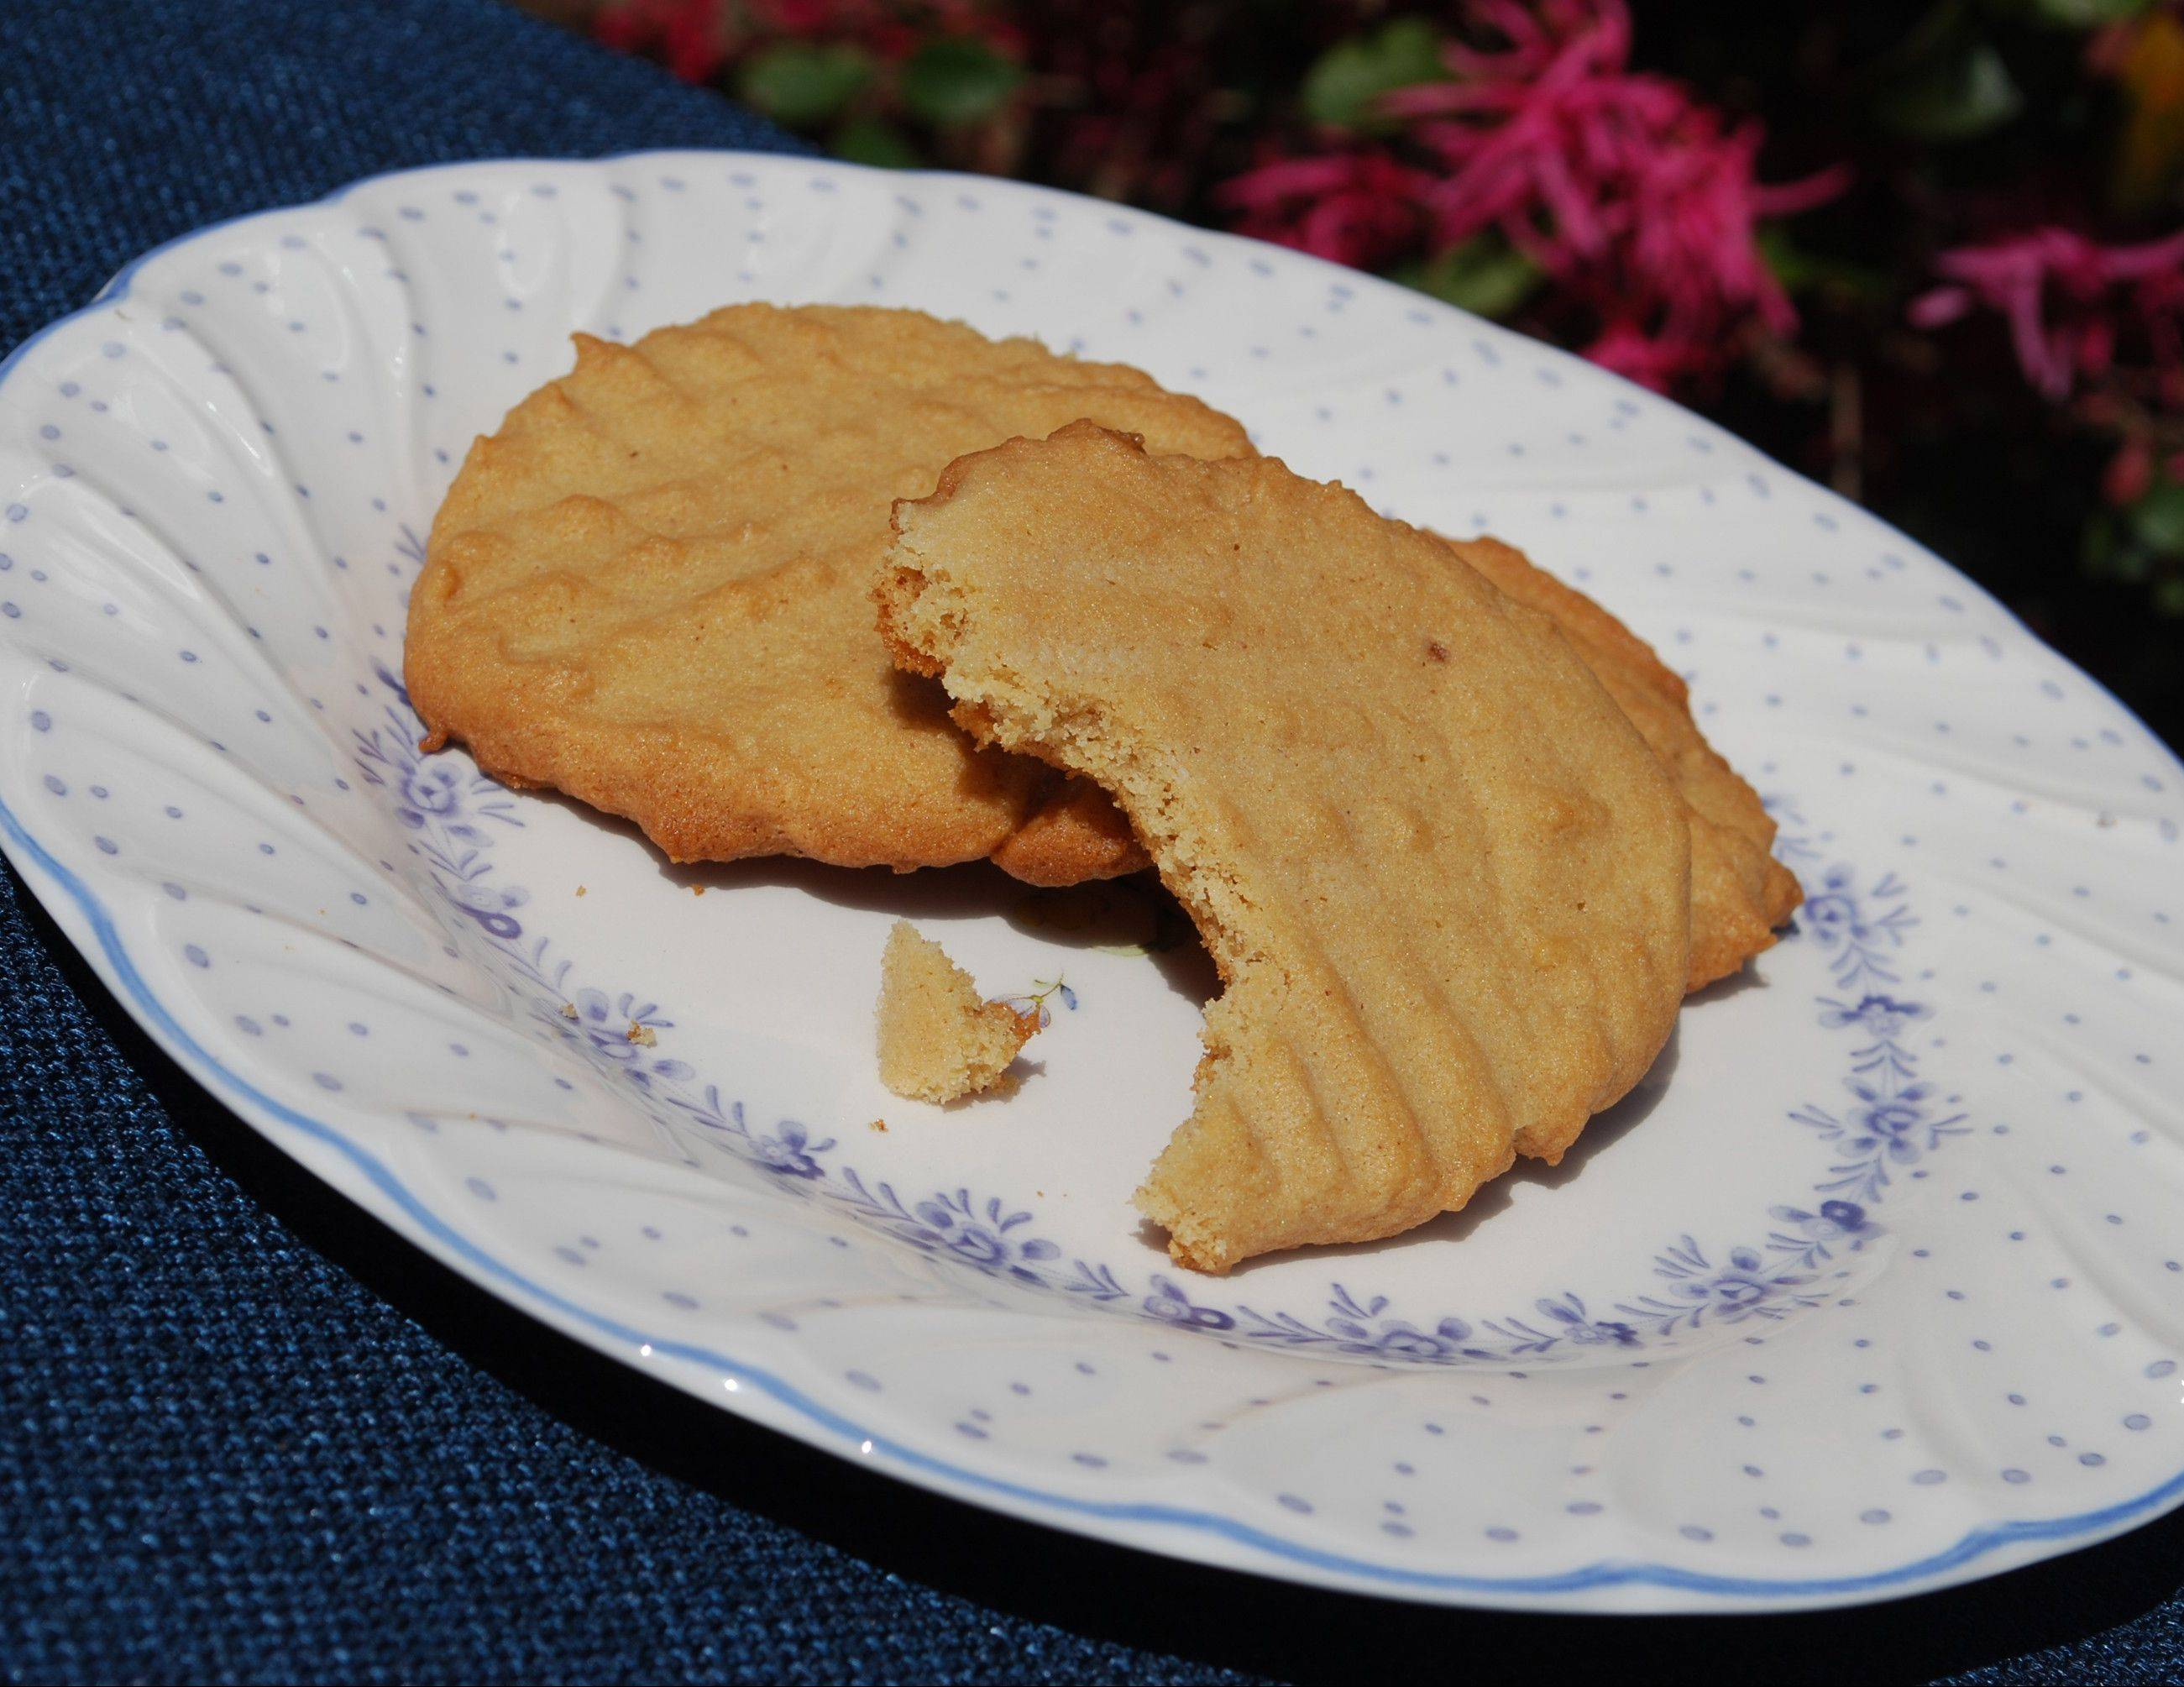 Kitchen scoop: Memories of mom's cookies inspire old-time peanut butter favorites